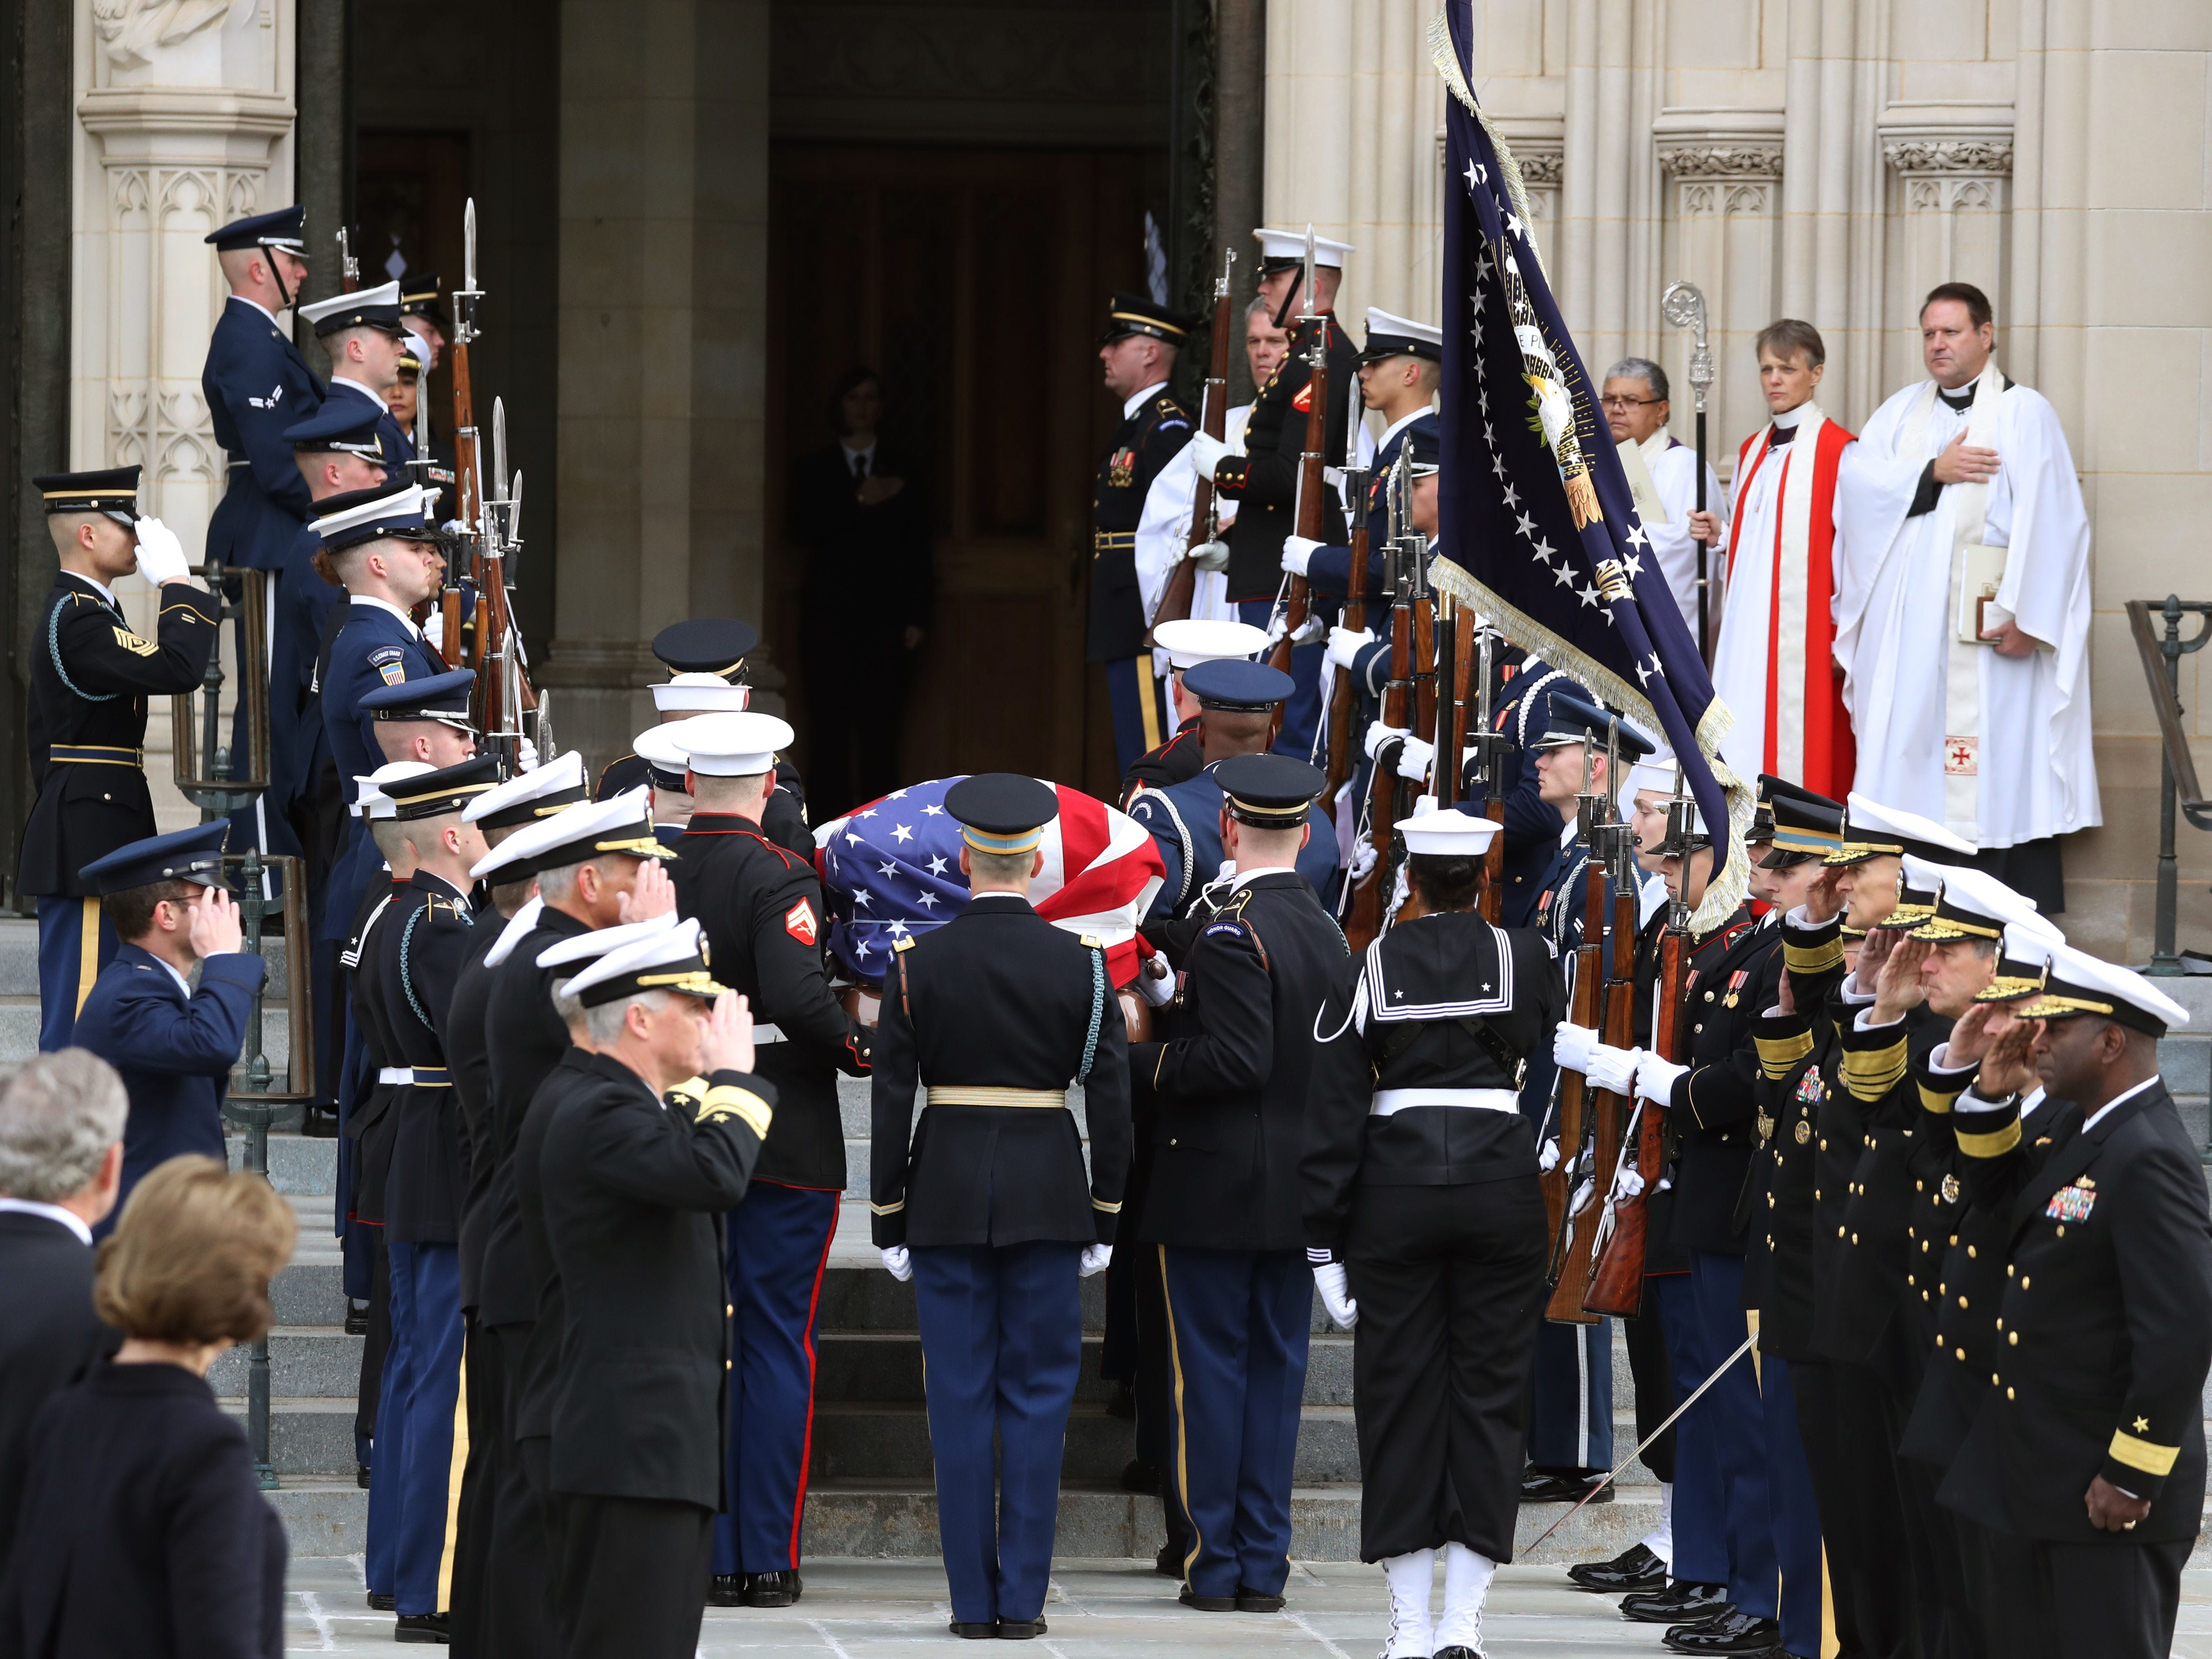 The remains of former President George H. W. Bush arrive at the National Cathedral in Washington, D.C., for his funeral.